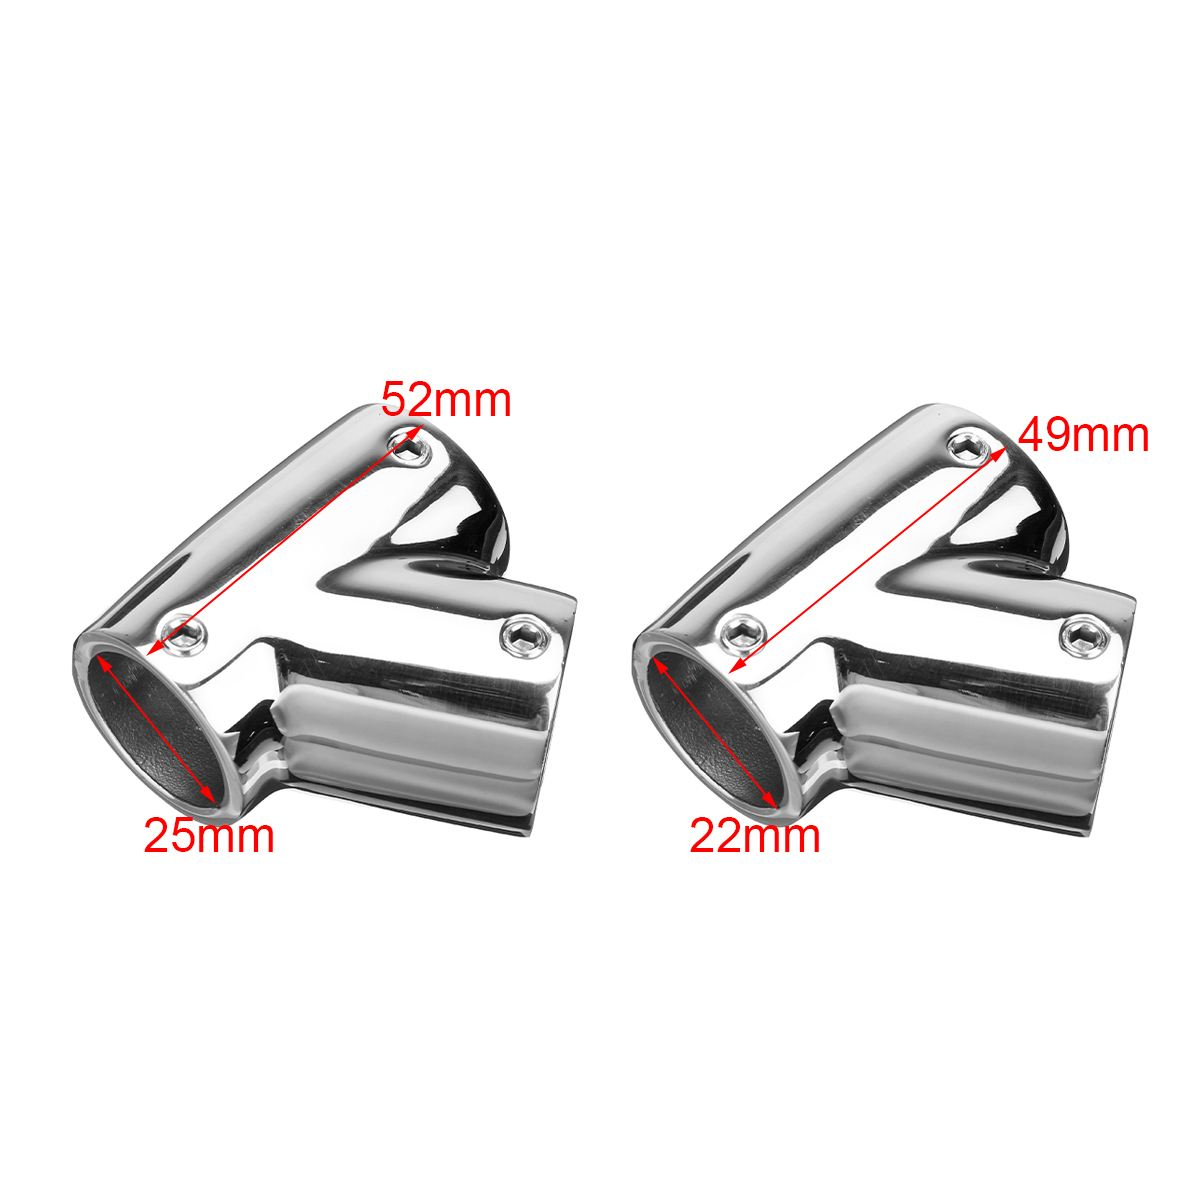 Audew Pipe Connector 316 Stainless Steel Marine Boat Yacht Railing Handrail Pipe Tube Connector Clamp 22mm 25mm Marine Hardware